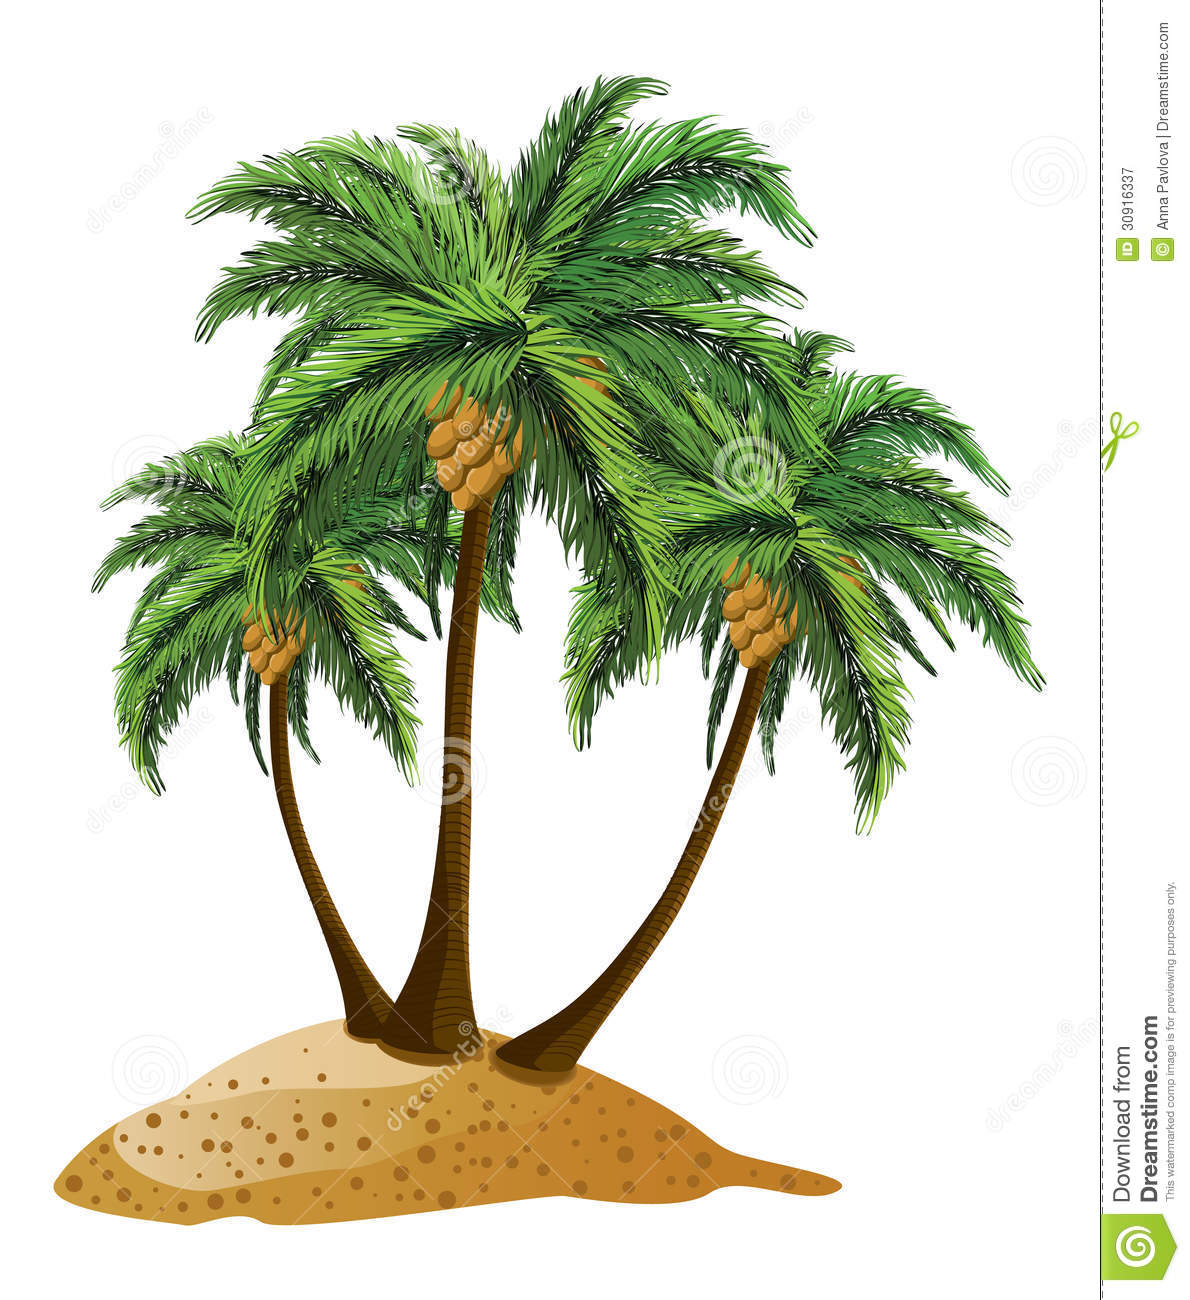 Palm Trees Cartoon Images